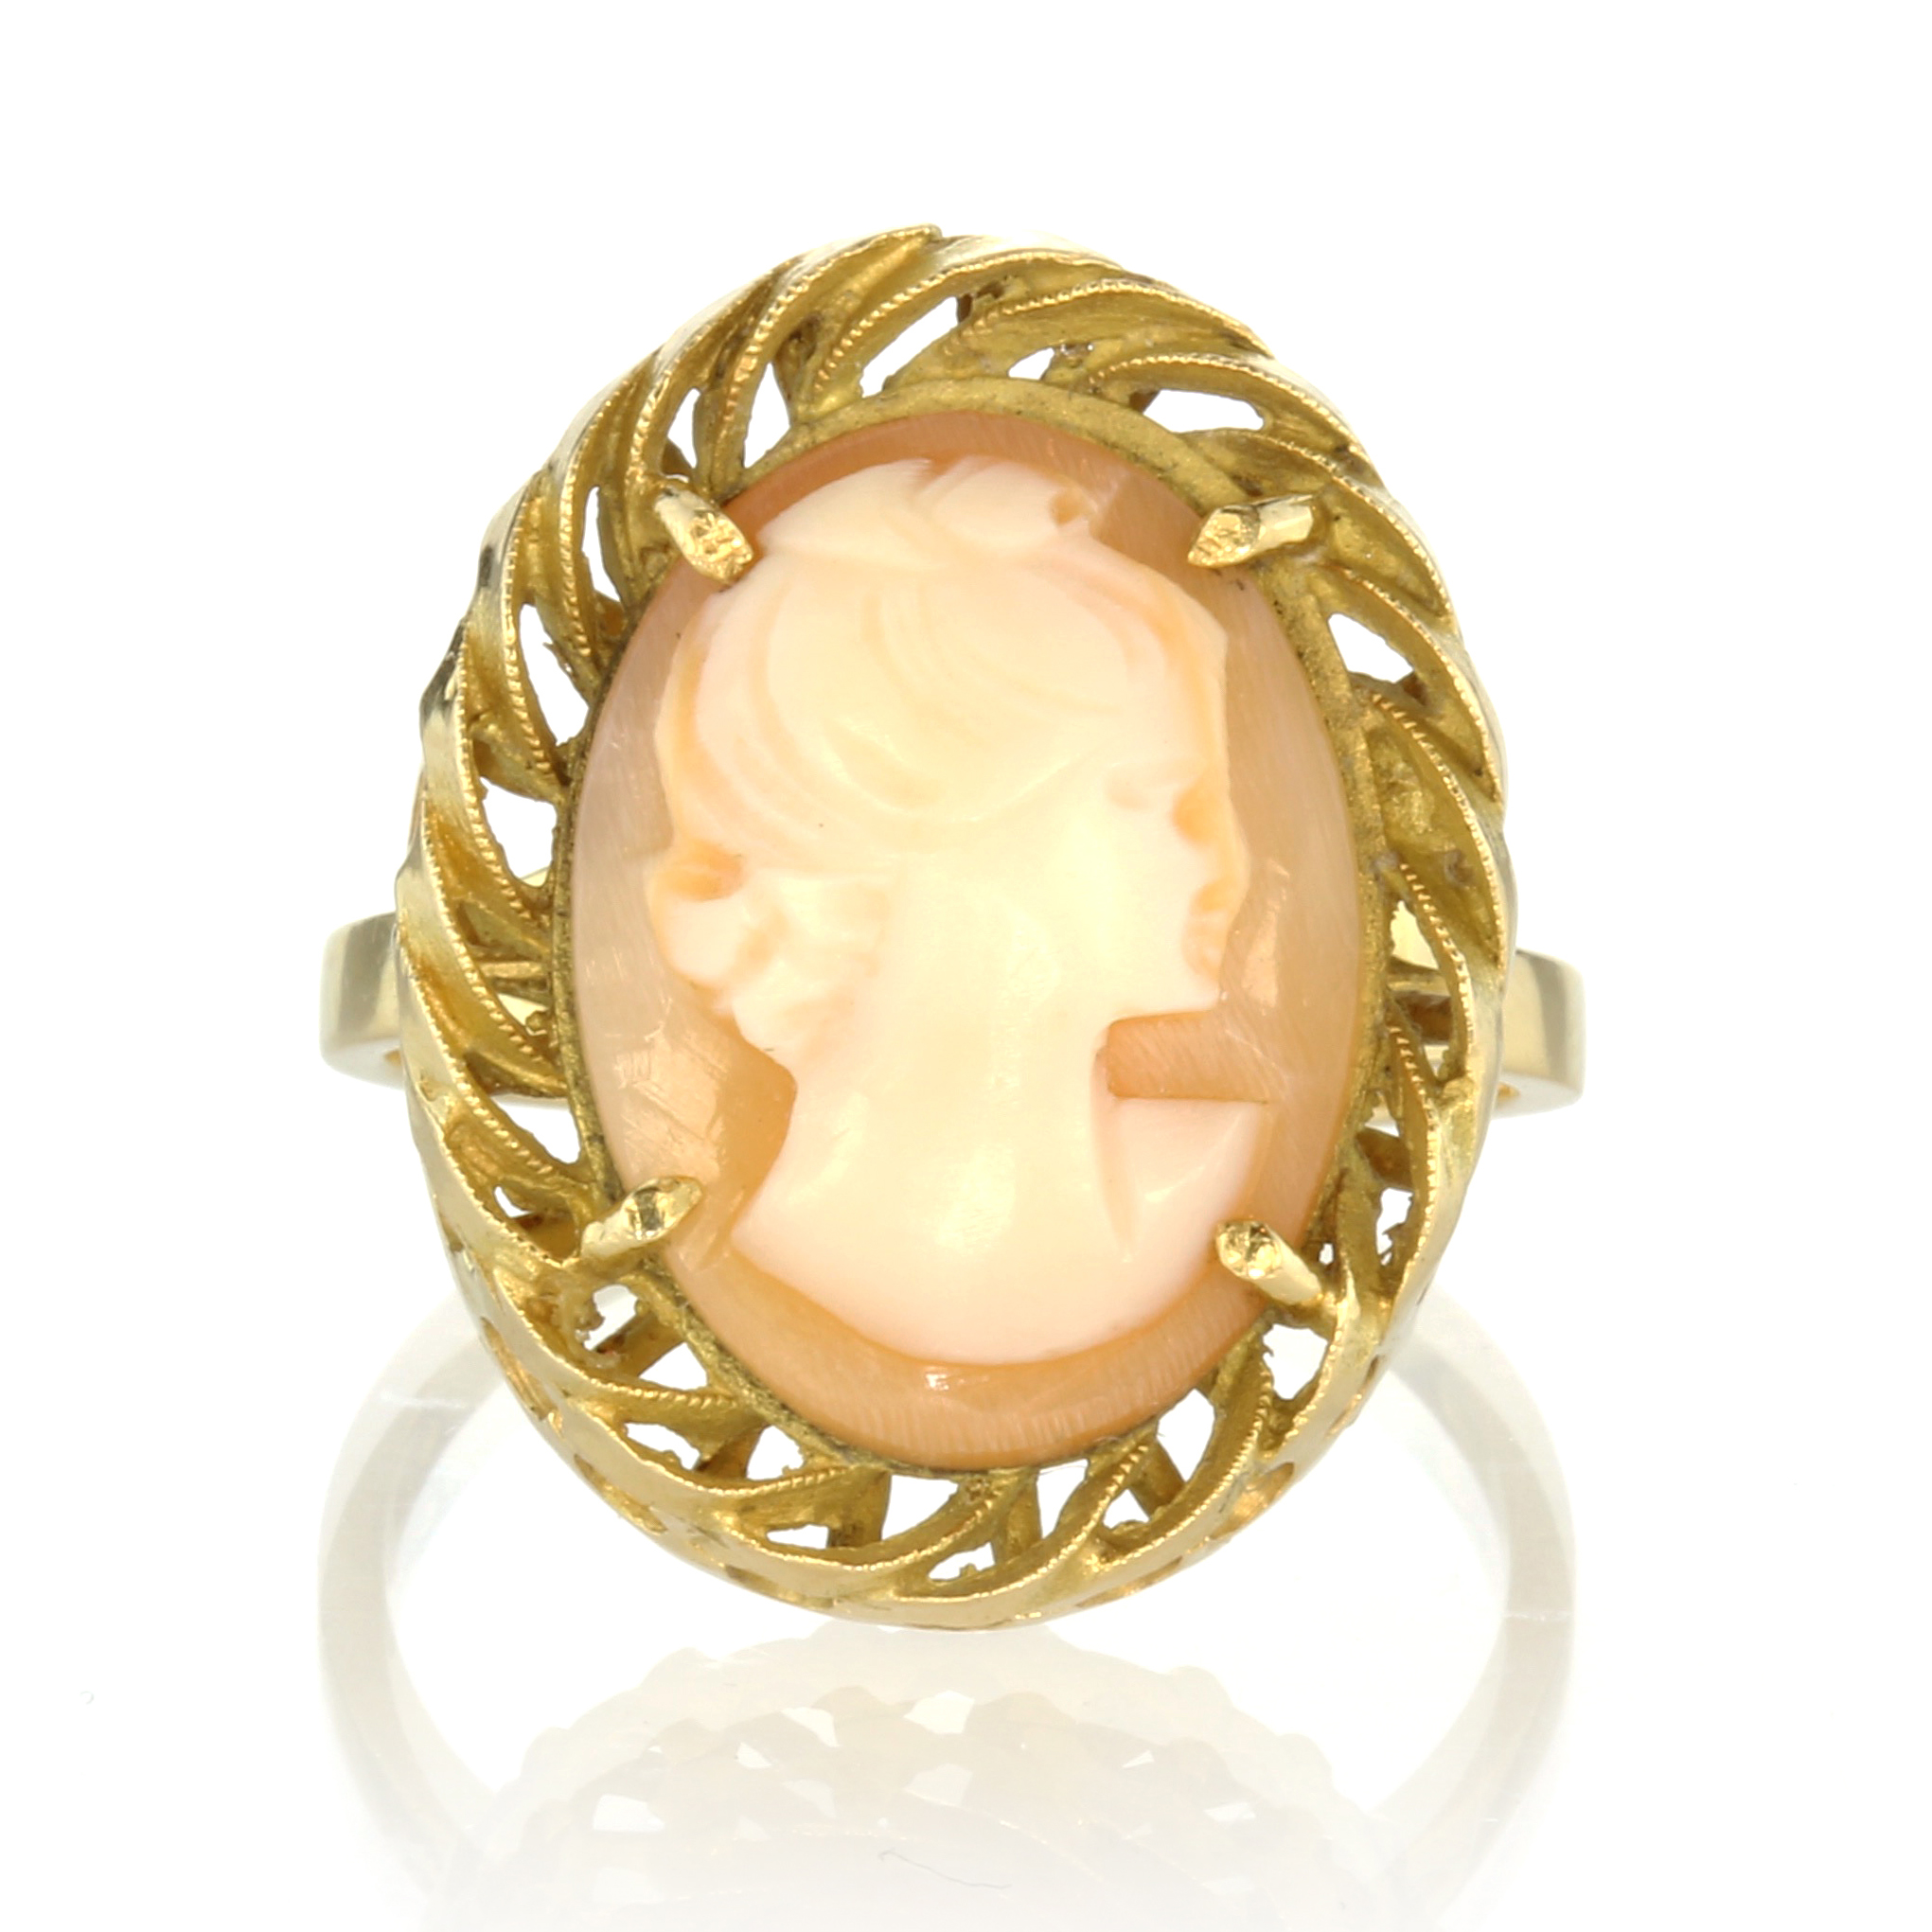 Los 47 - An antique carved cameo ring in 18ct yellow gold carved to depict the bust of a lady within a